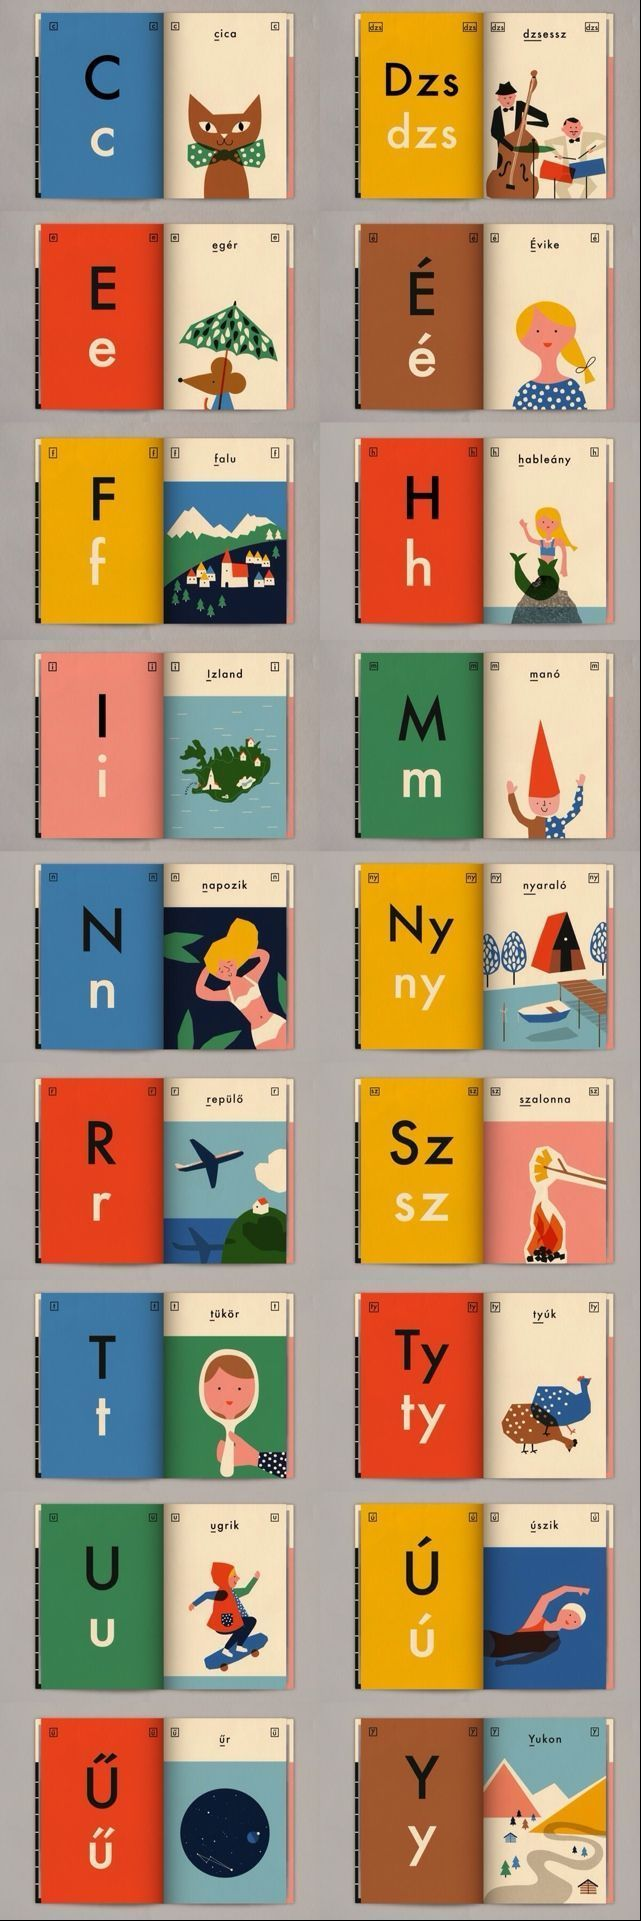 """©2013 Anna Kovecses. """"This book is the result of a very personal project aiming to introduce a little girl to the 44 letters of the Hungarian alphabet."""" http://www.blurb.co.uk/b/4498654-abeces-konyv#_=_"""